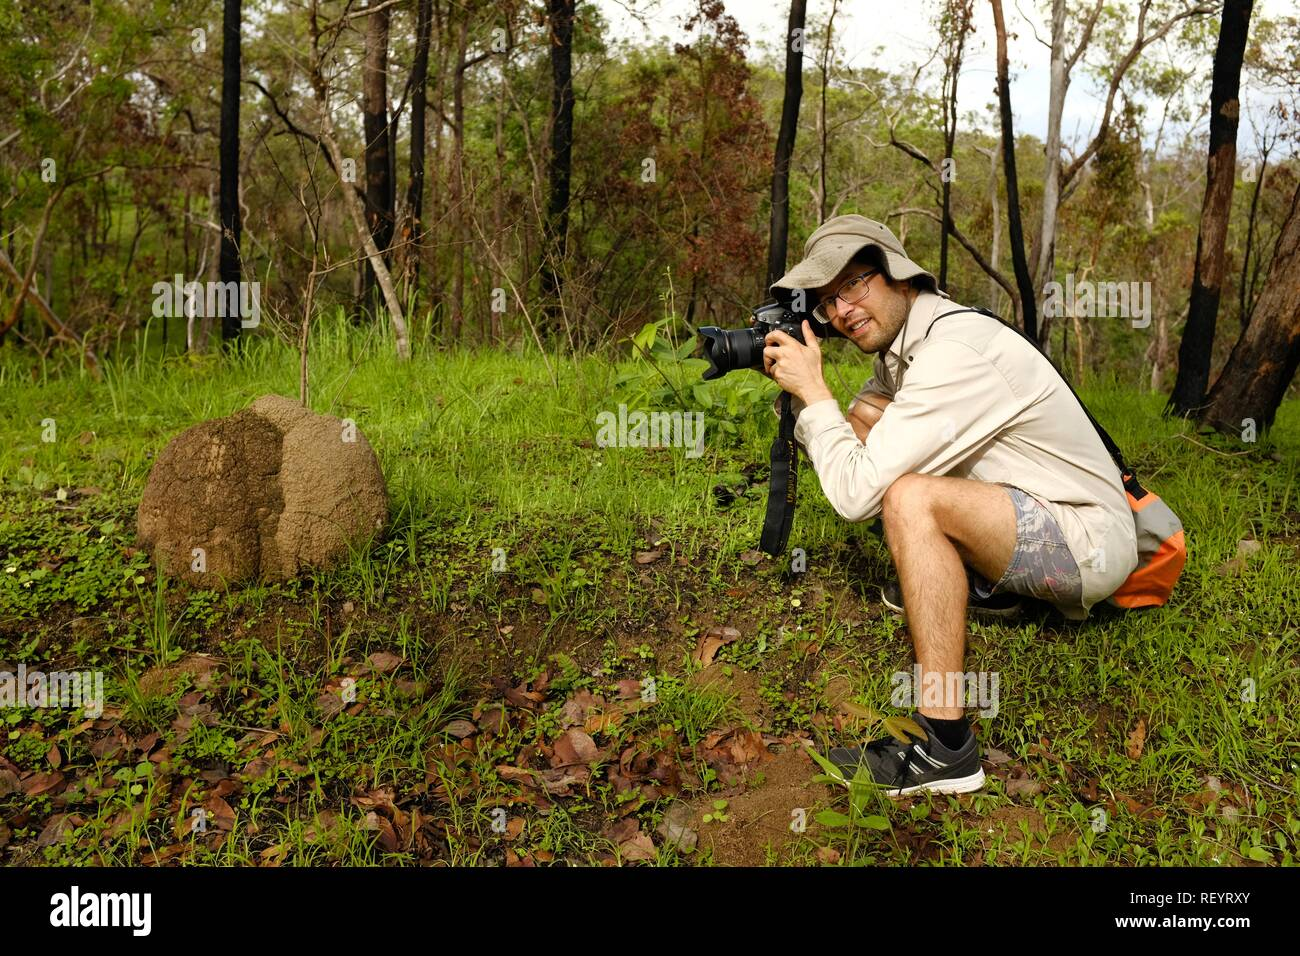 An awesomely good looking man taking a photograph of a termite hill in nature, Mia Mia State Forest, Queensland, Australia - Stock Image